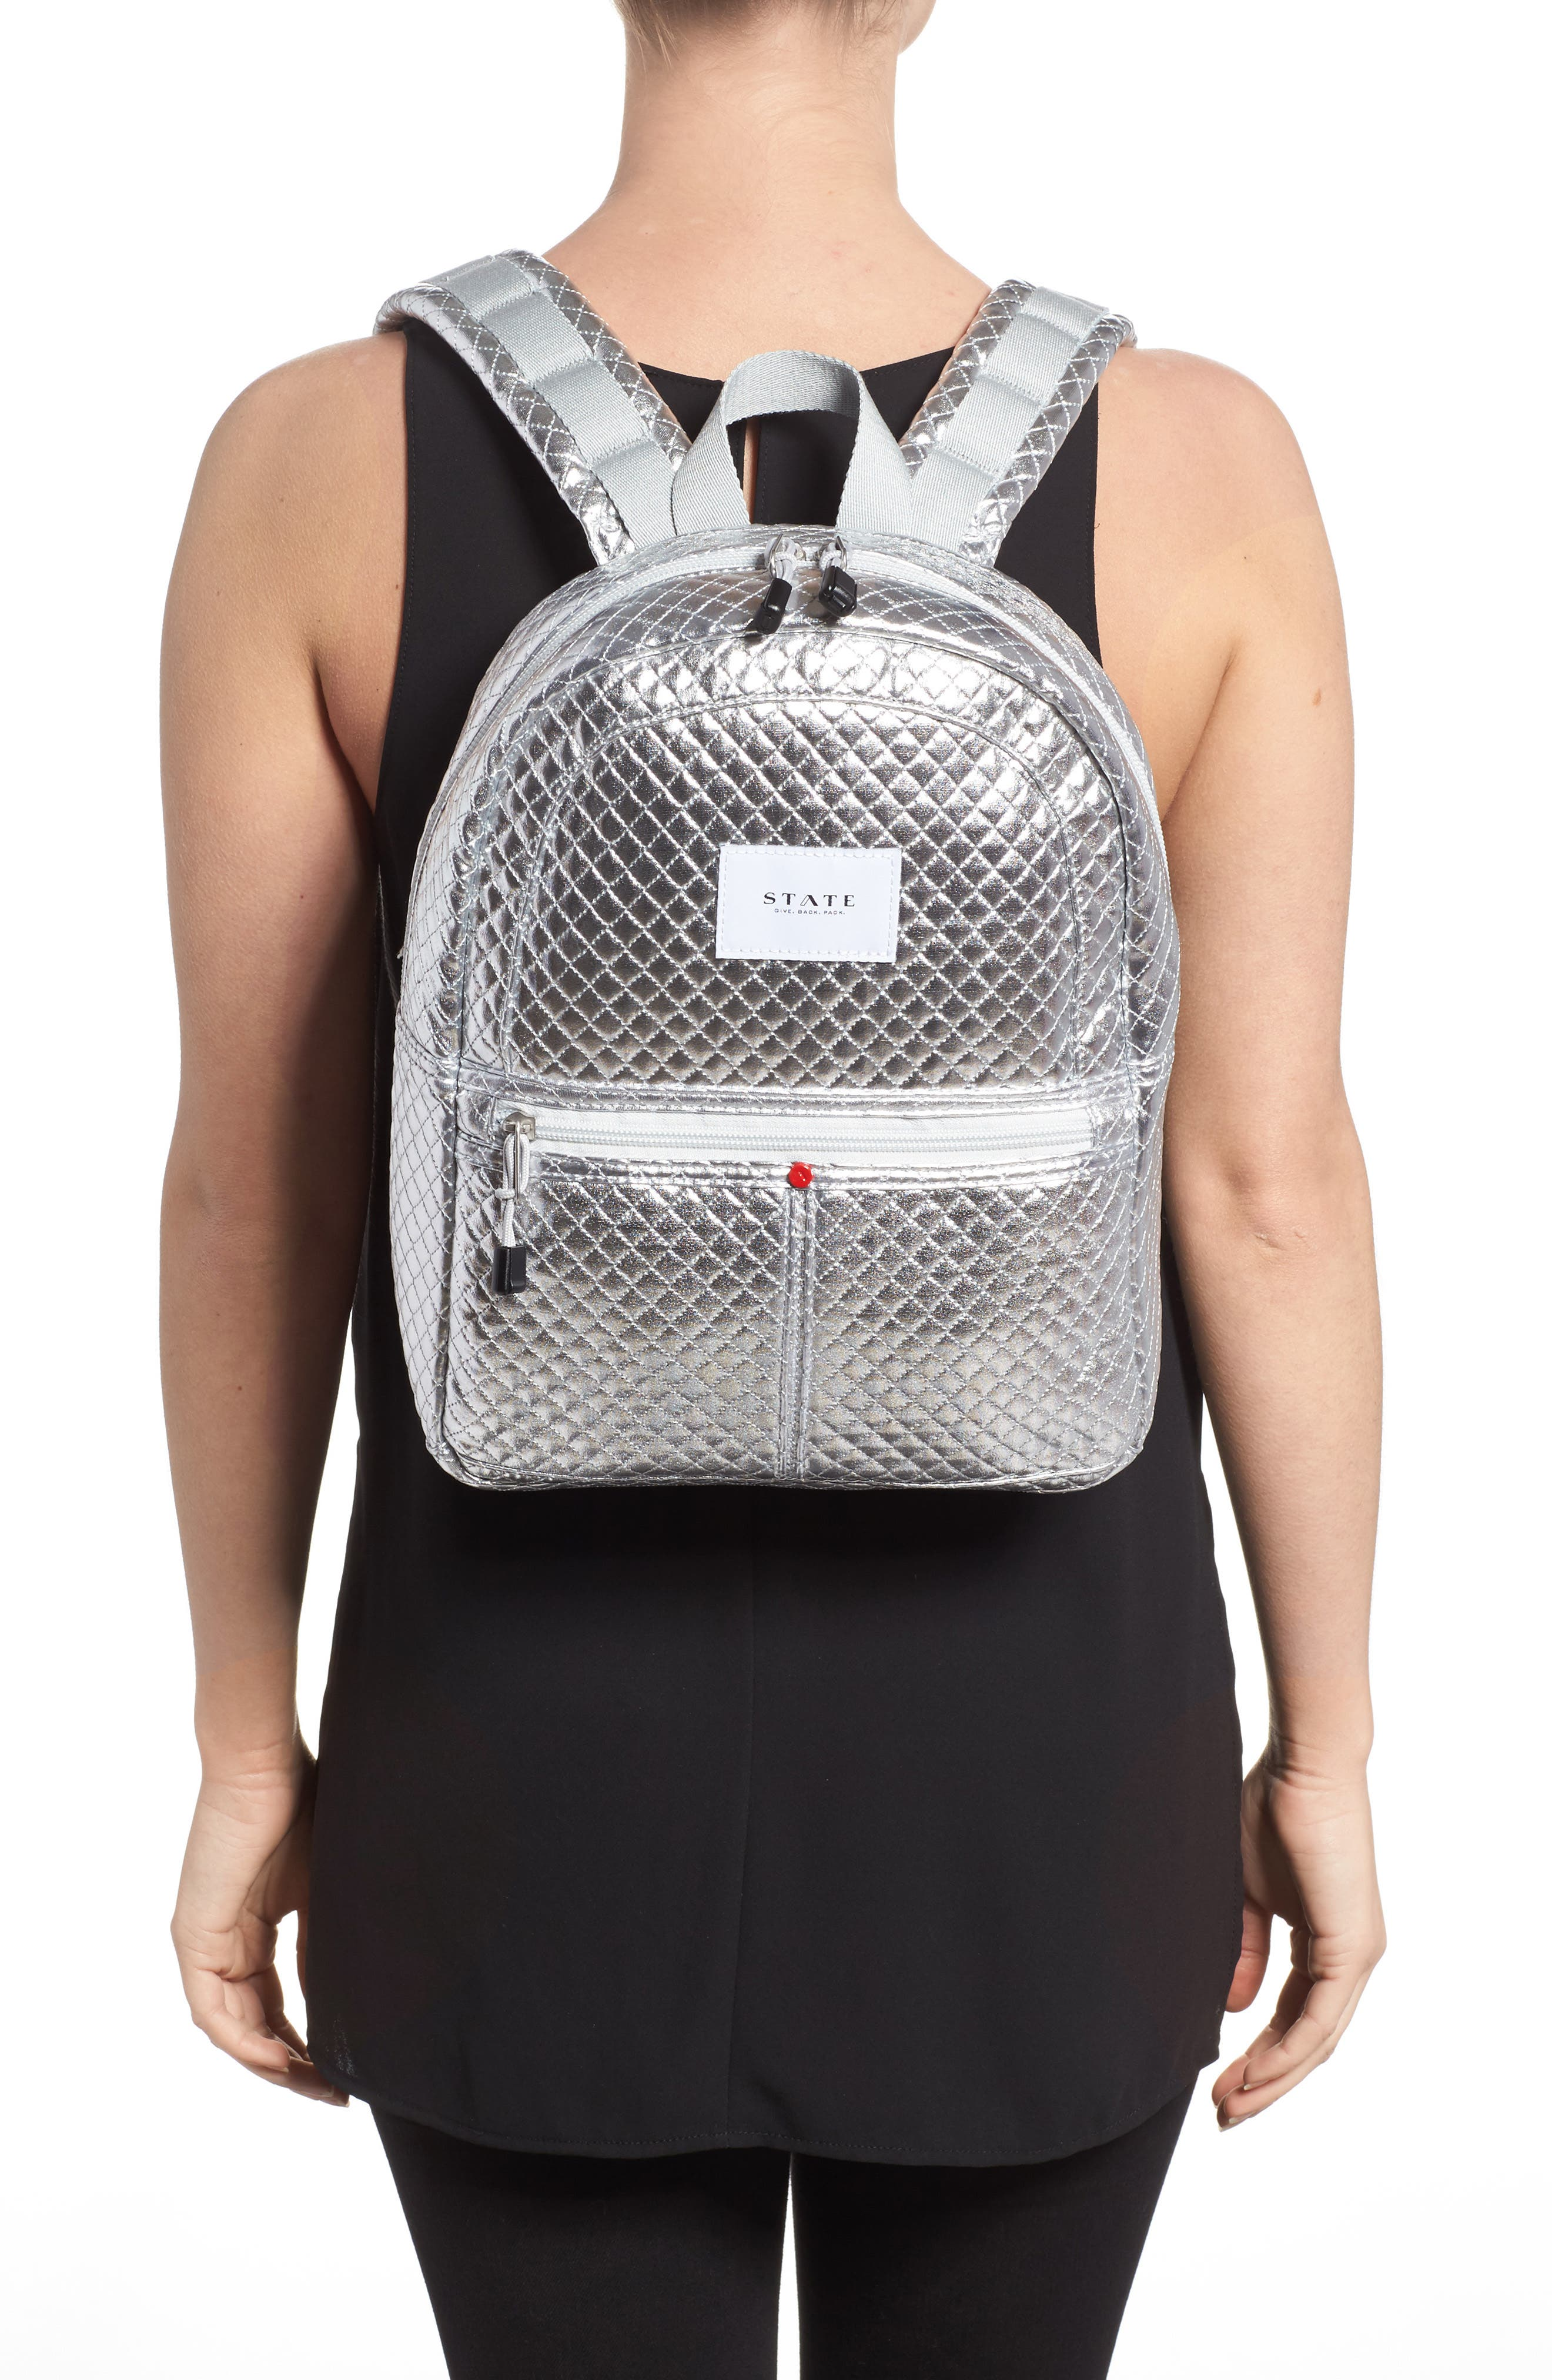 Flatbush Mini Kane Backpack,                             Alternate thumbnail 2, color,                             Silver Quilted